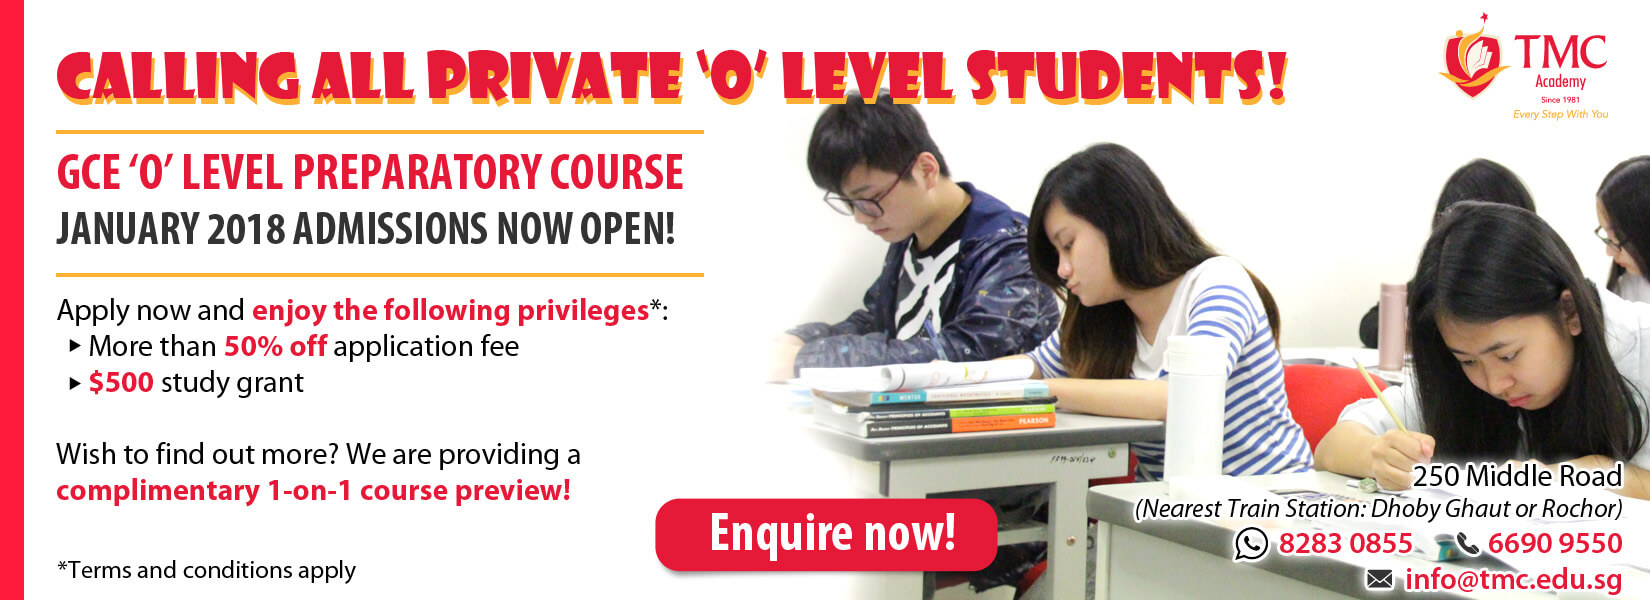 GCE 'O' Level Course Preview Banner